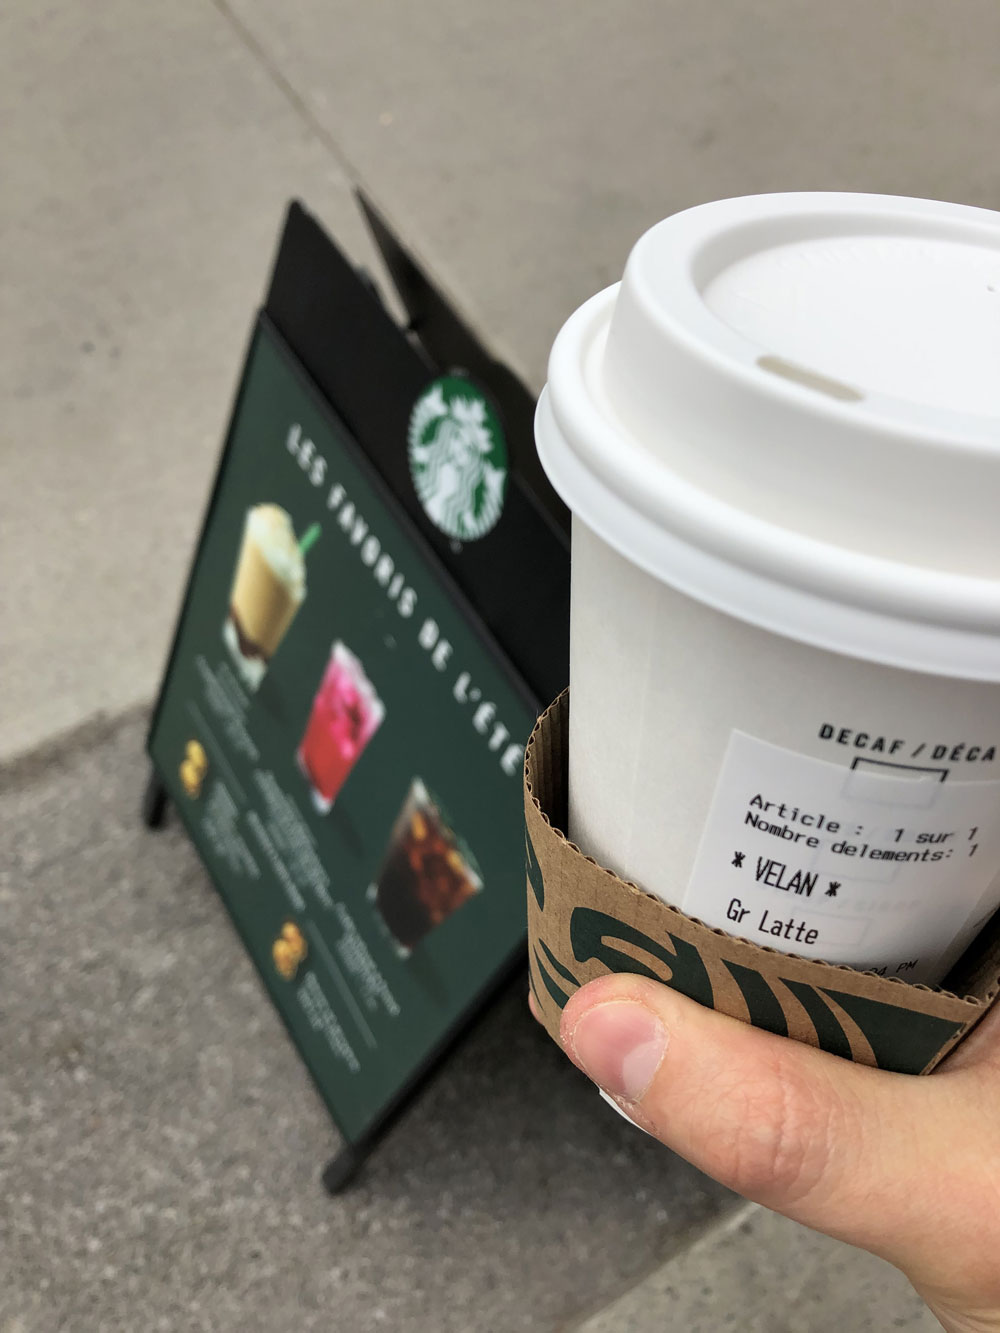 12-pm-(Grab-a-coffee.-Usually-they-mispell-my-name)